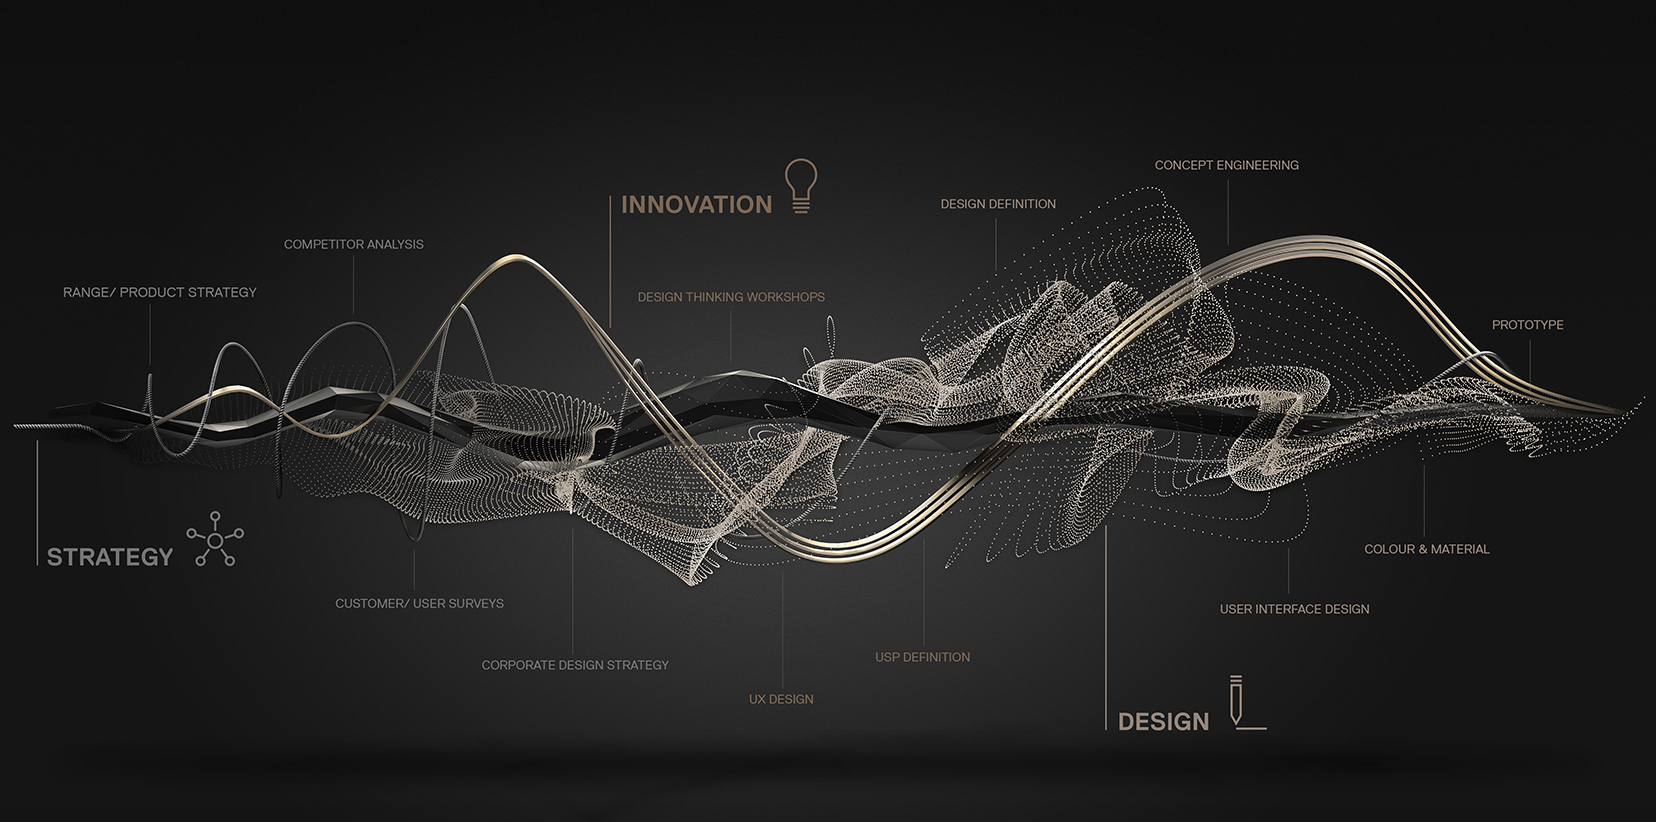 Original_pearl_creative_leistungsgrafik_strategy_innovation_design_1656x822